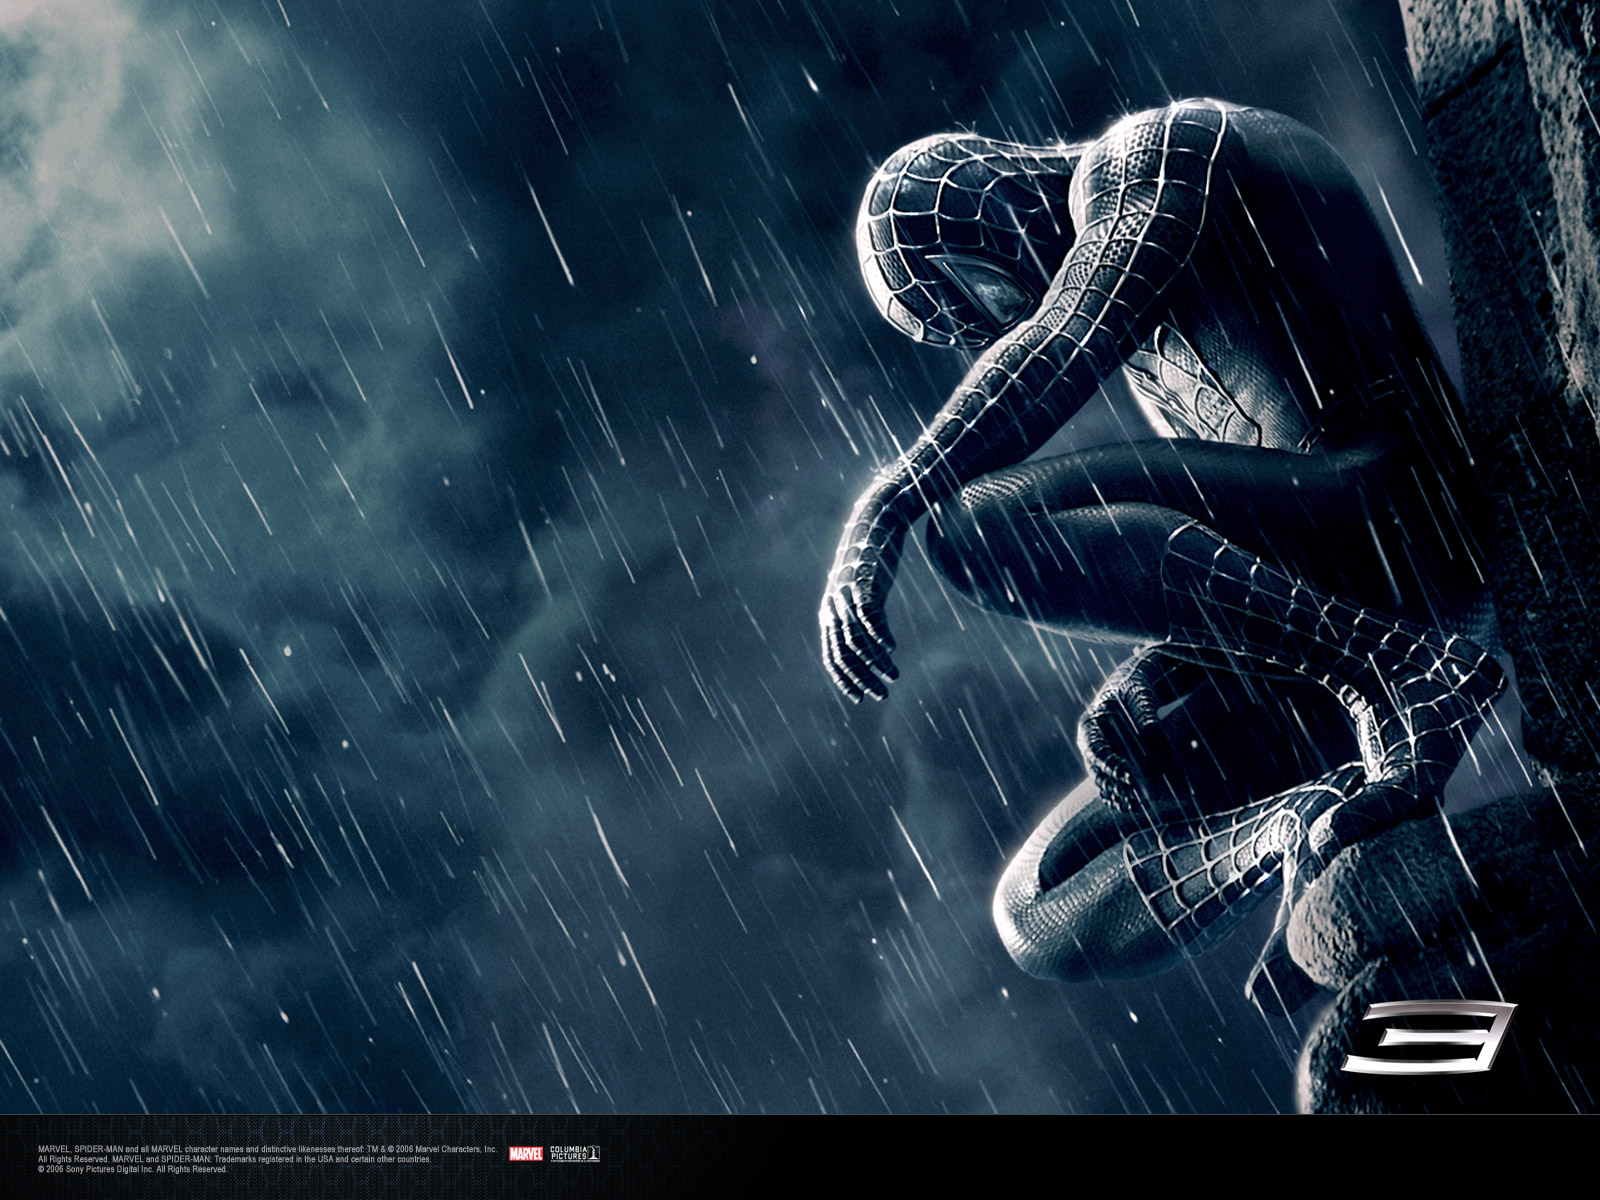 Wallpaper Spiderman gargouille costume noir